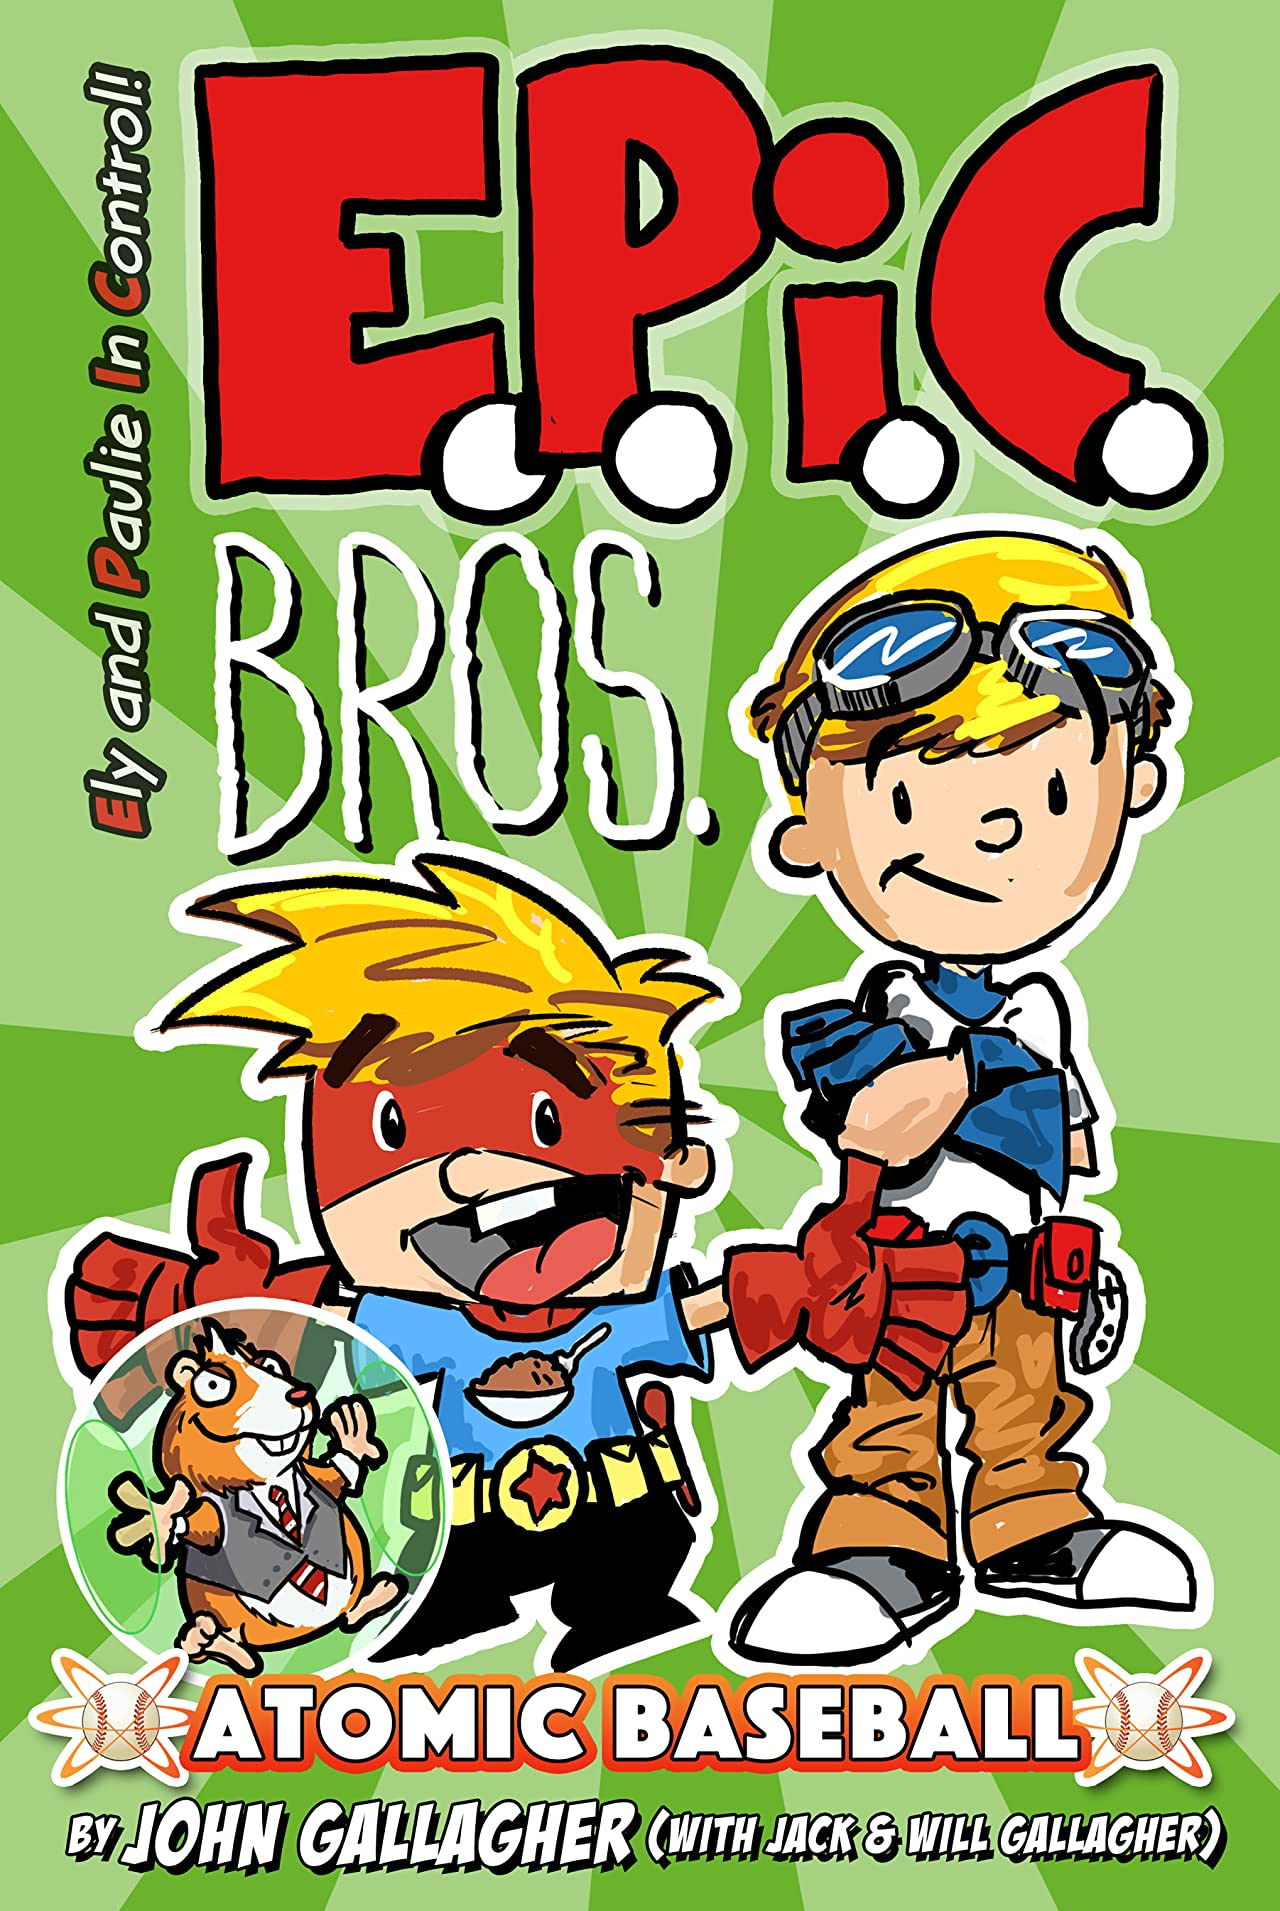 EPIC Bros. Vol. 1: Atomic Baseball